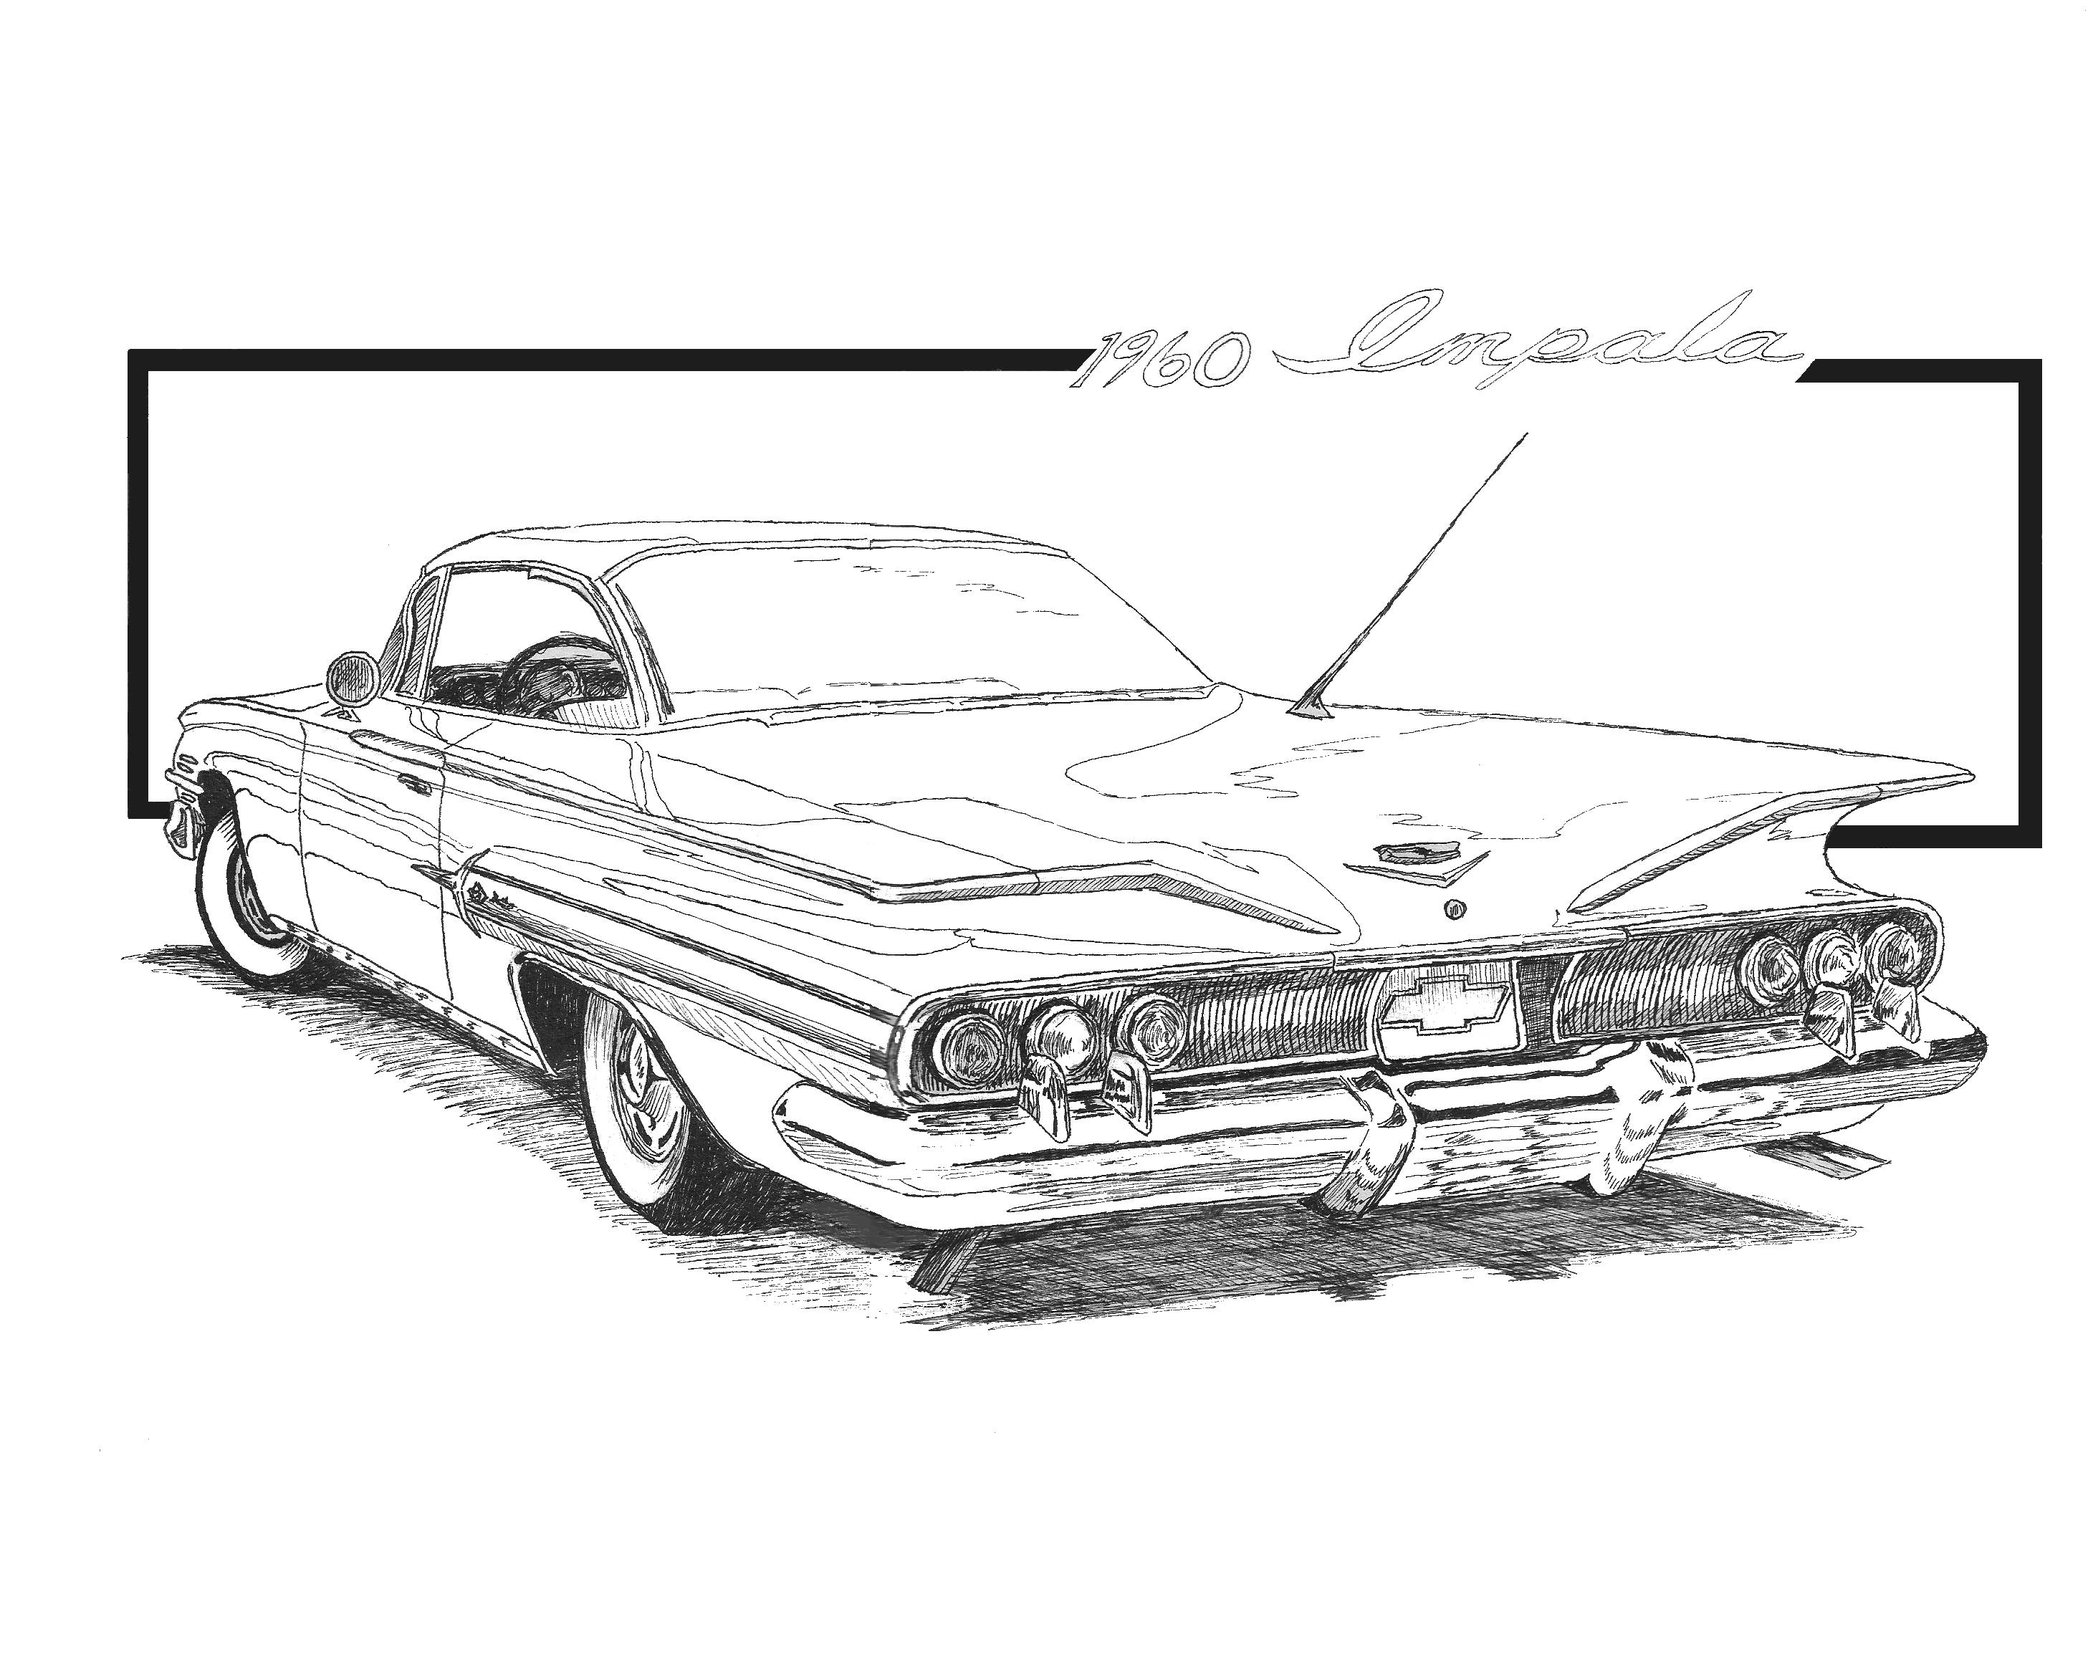 Drawn vehicle impala Rivi Wilex Wilex Impala by